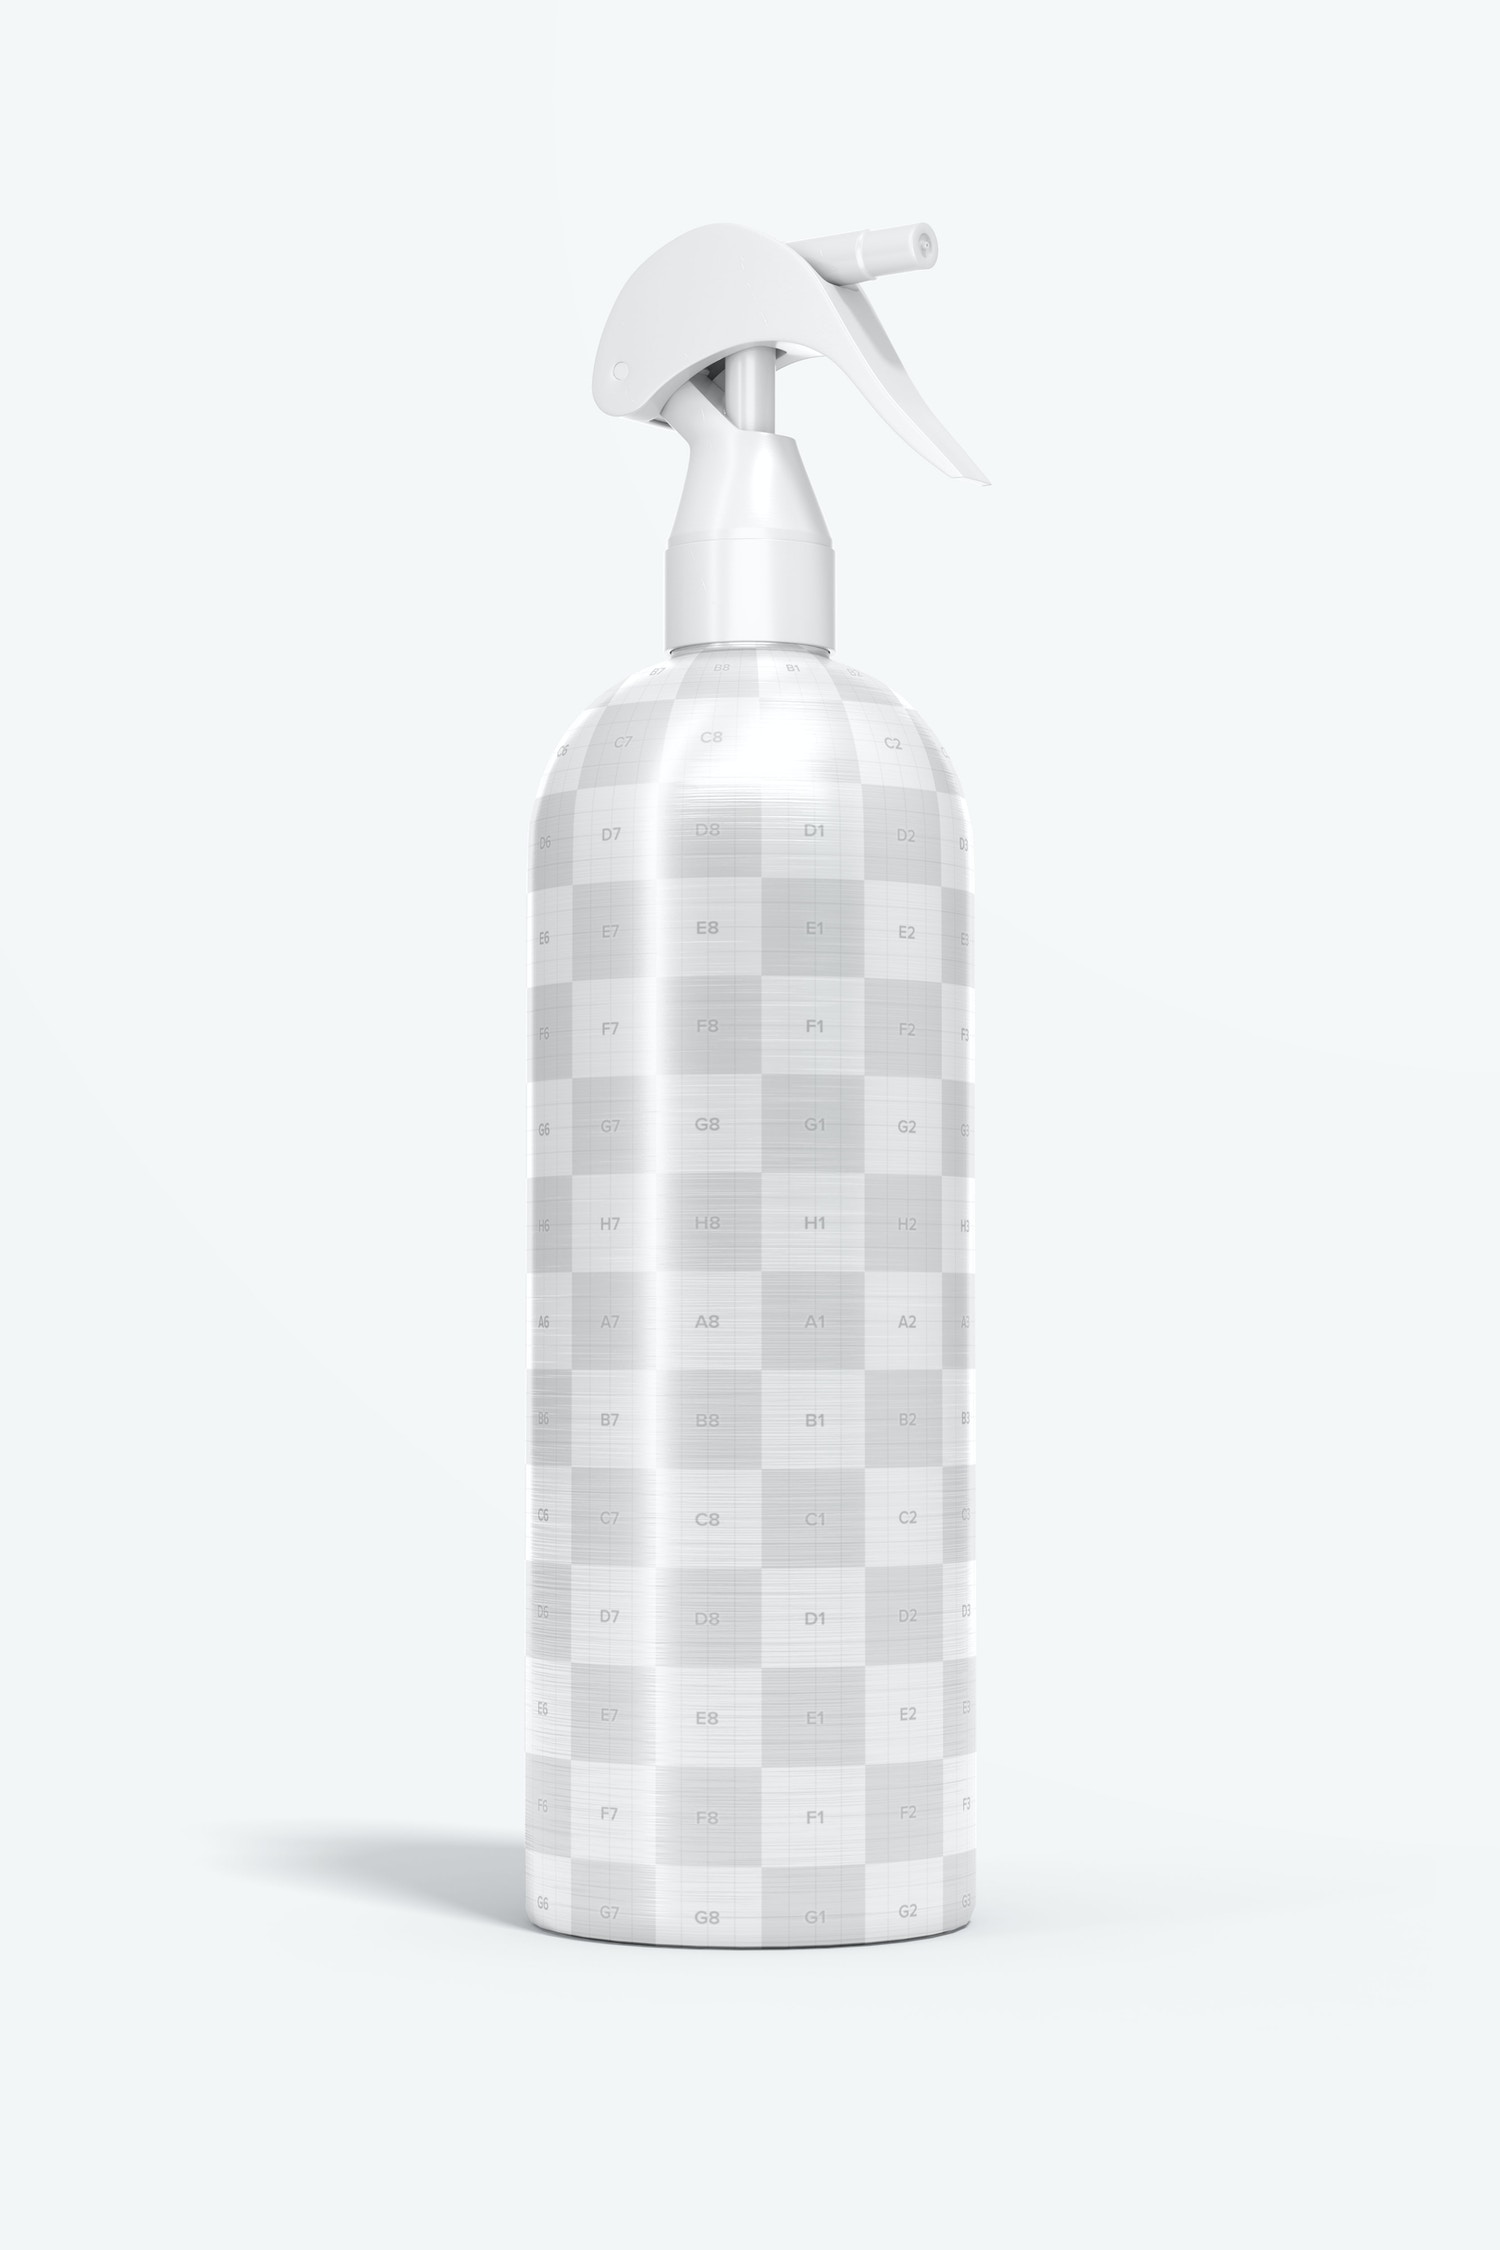 These are the areas of the bottle to place your design.